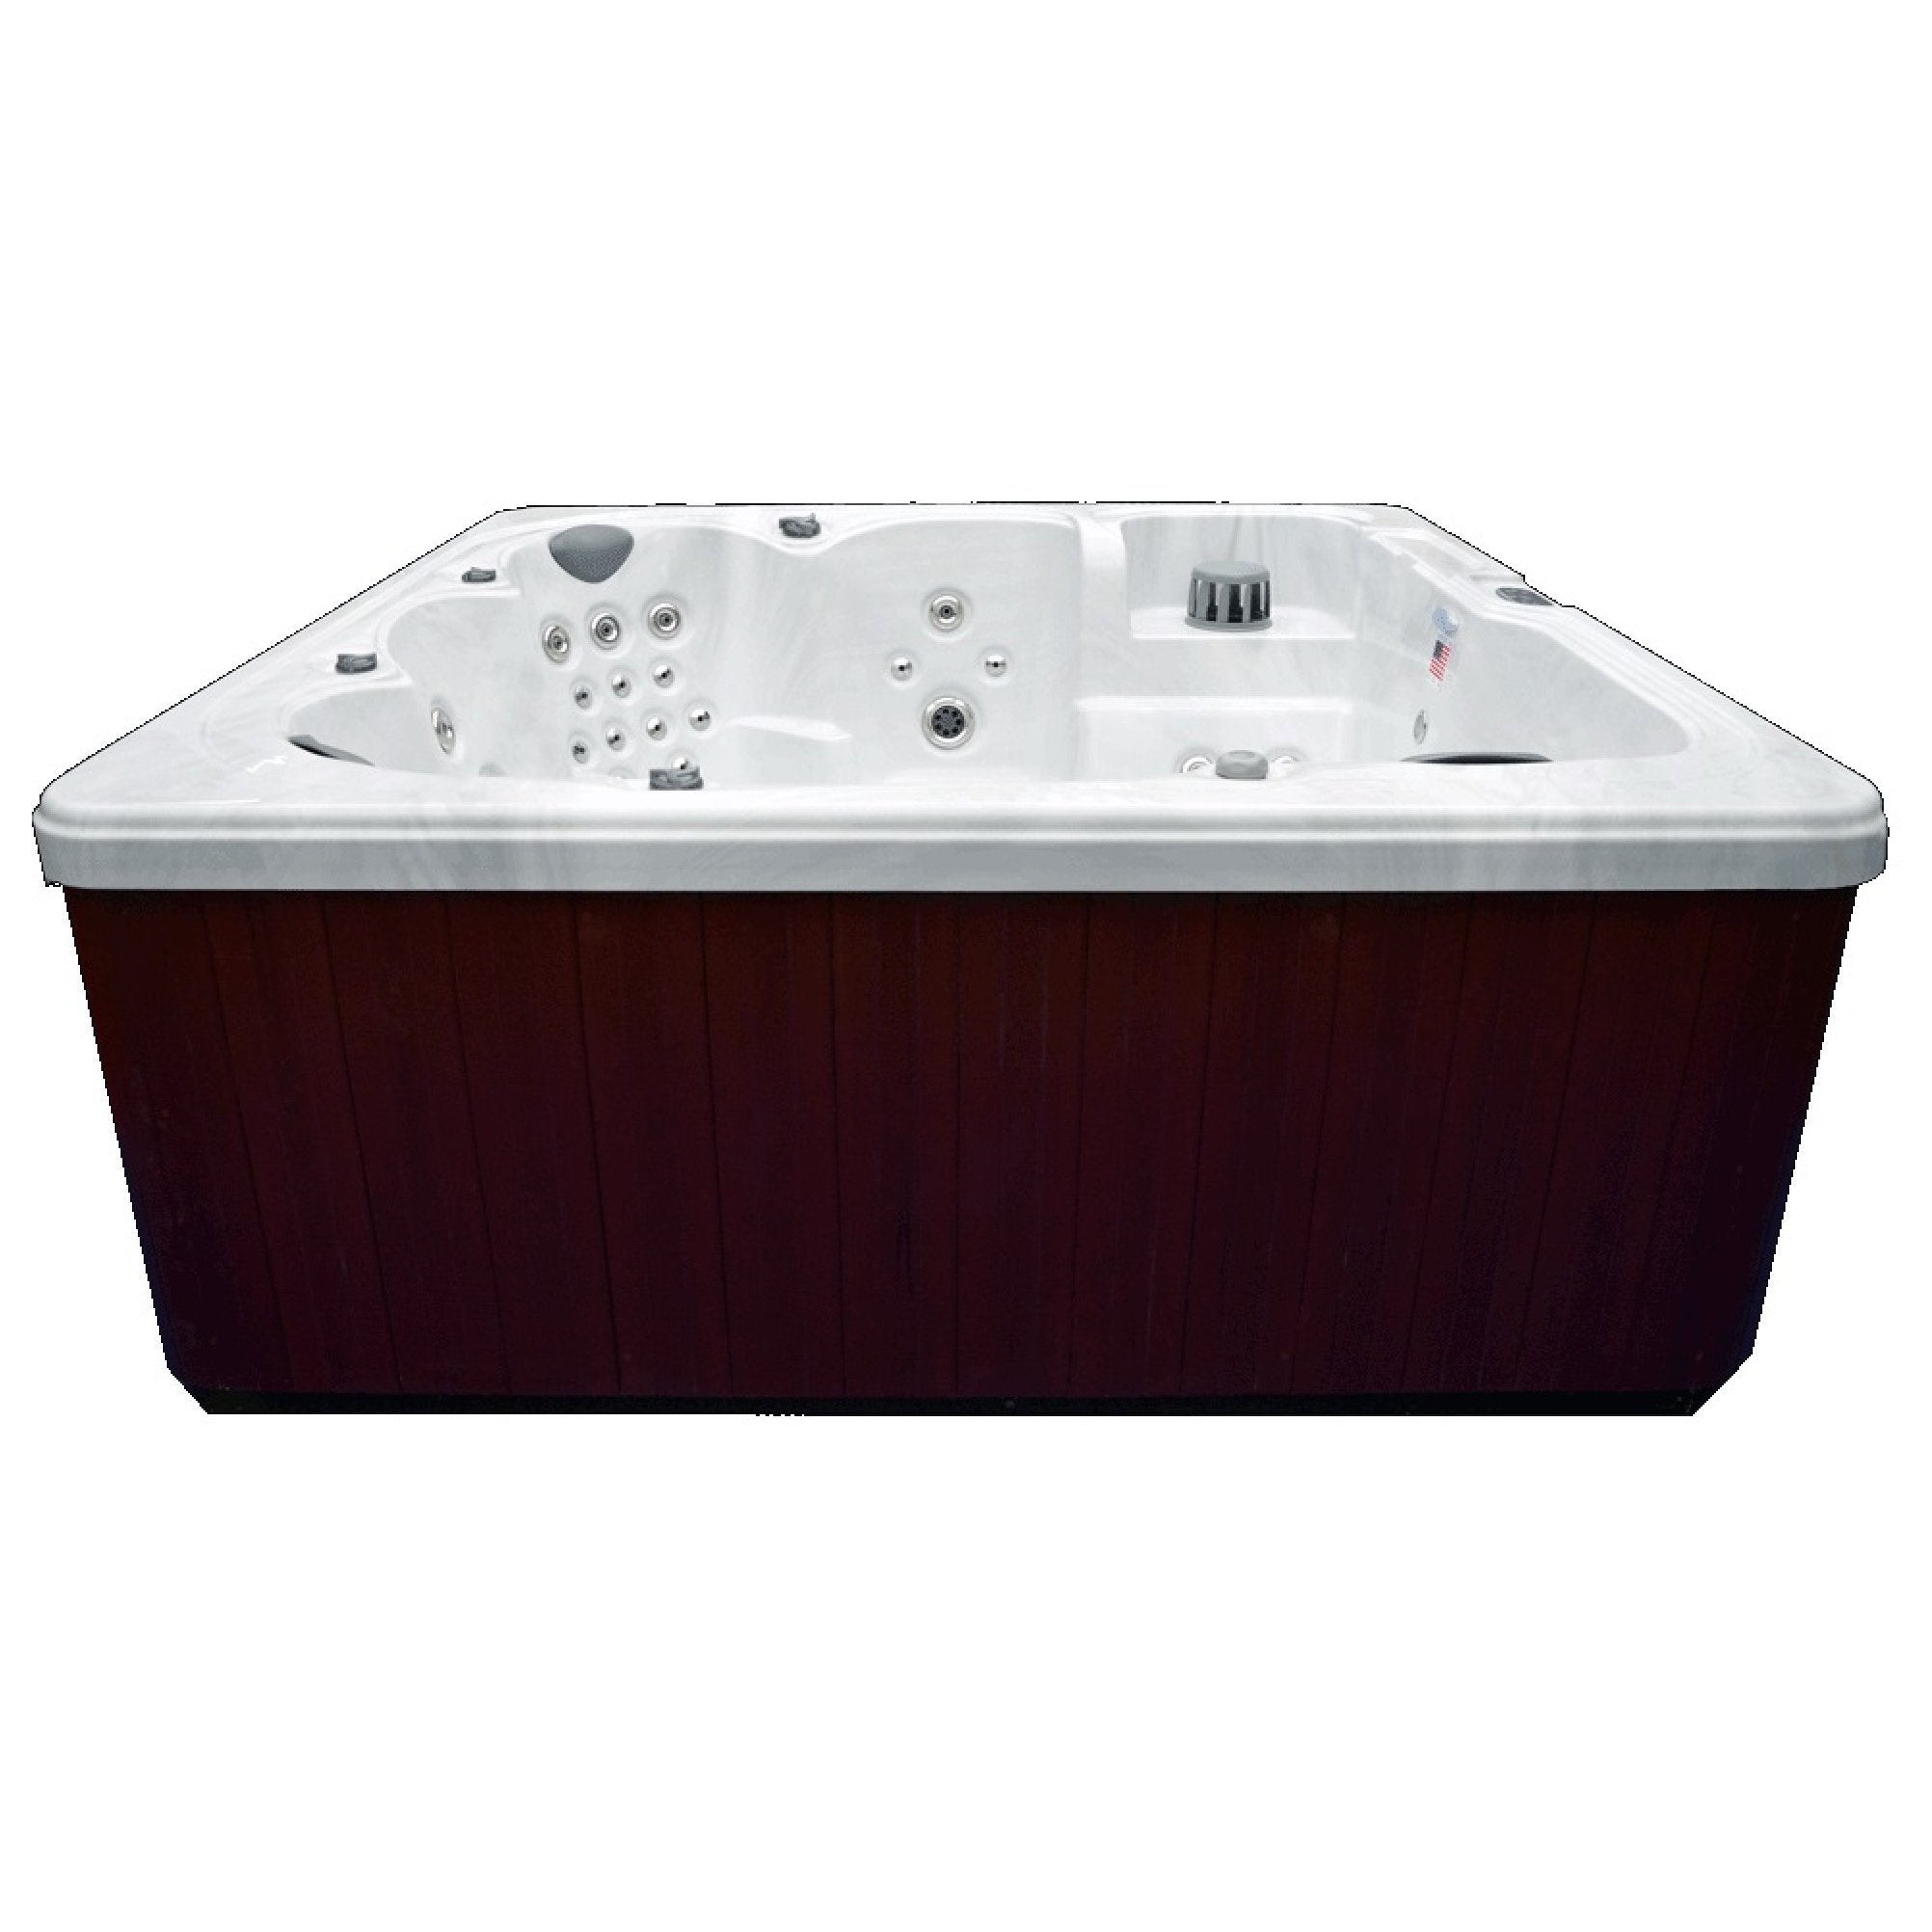 Attirant Shop Home And Garden Spas 6 Person 78 Jet Spa With Stainless Jets And Ozone  System   Free Shipping Today   Overstock.com   14387050